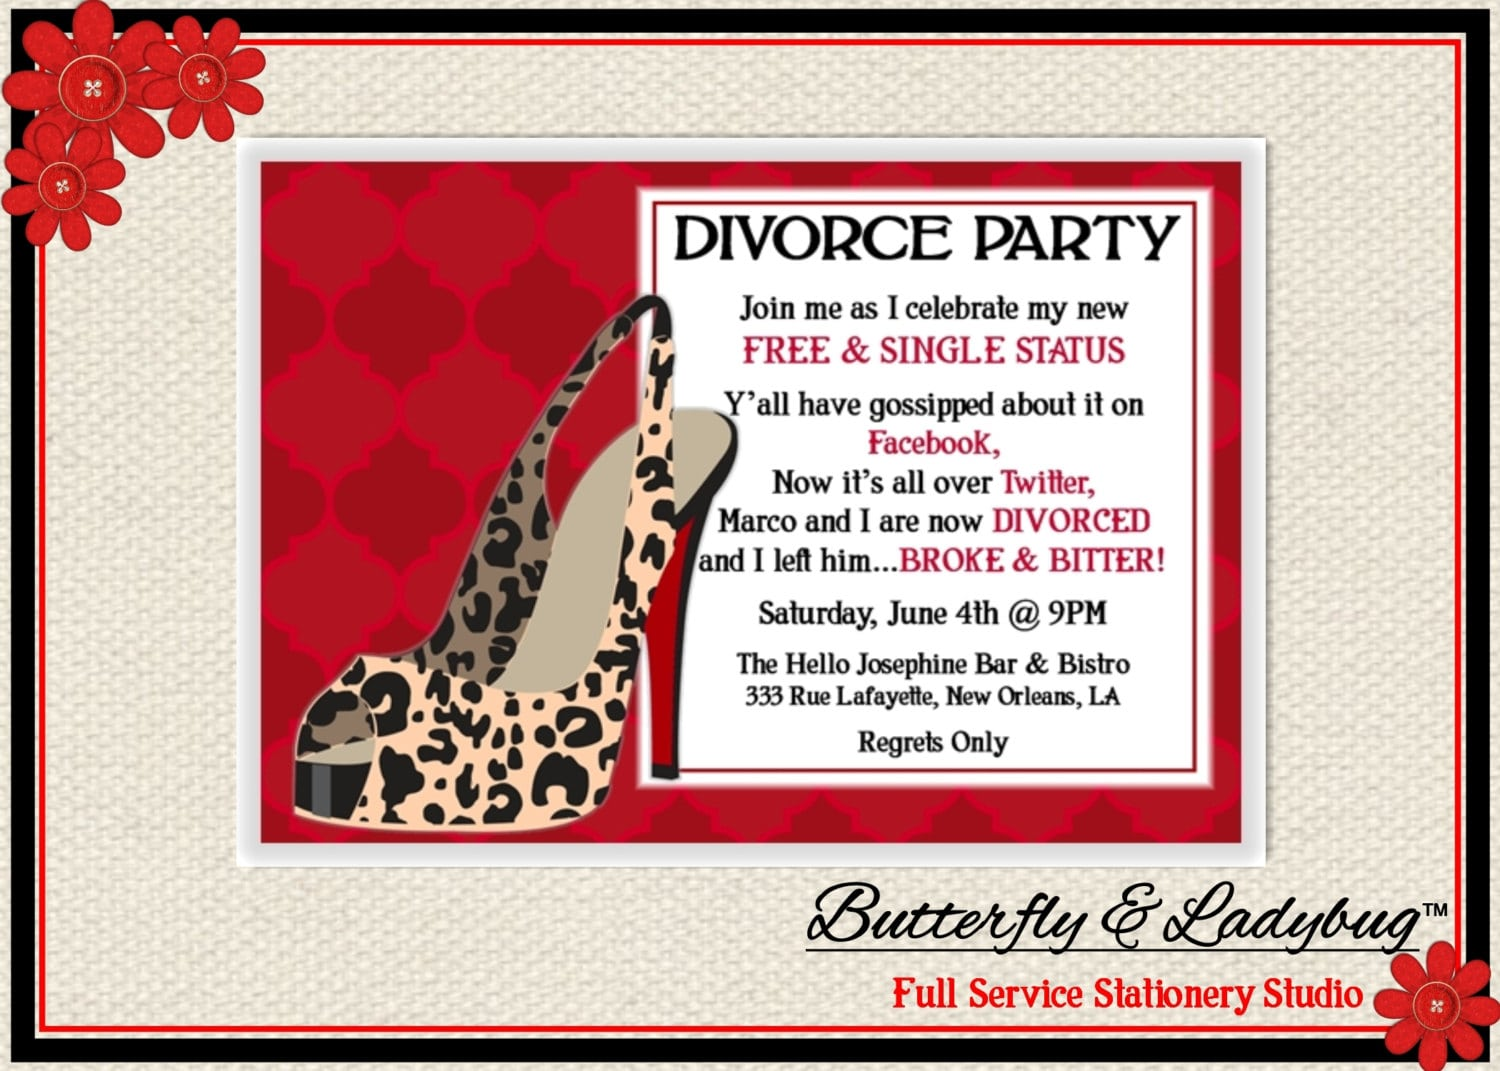 Divorce Party Invitation - Mickey Mouse Invitations Templates